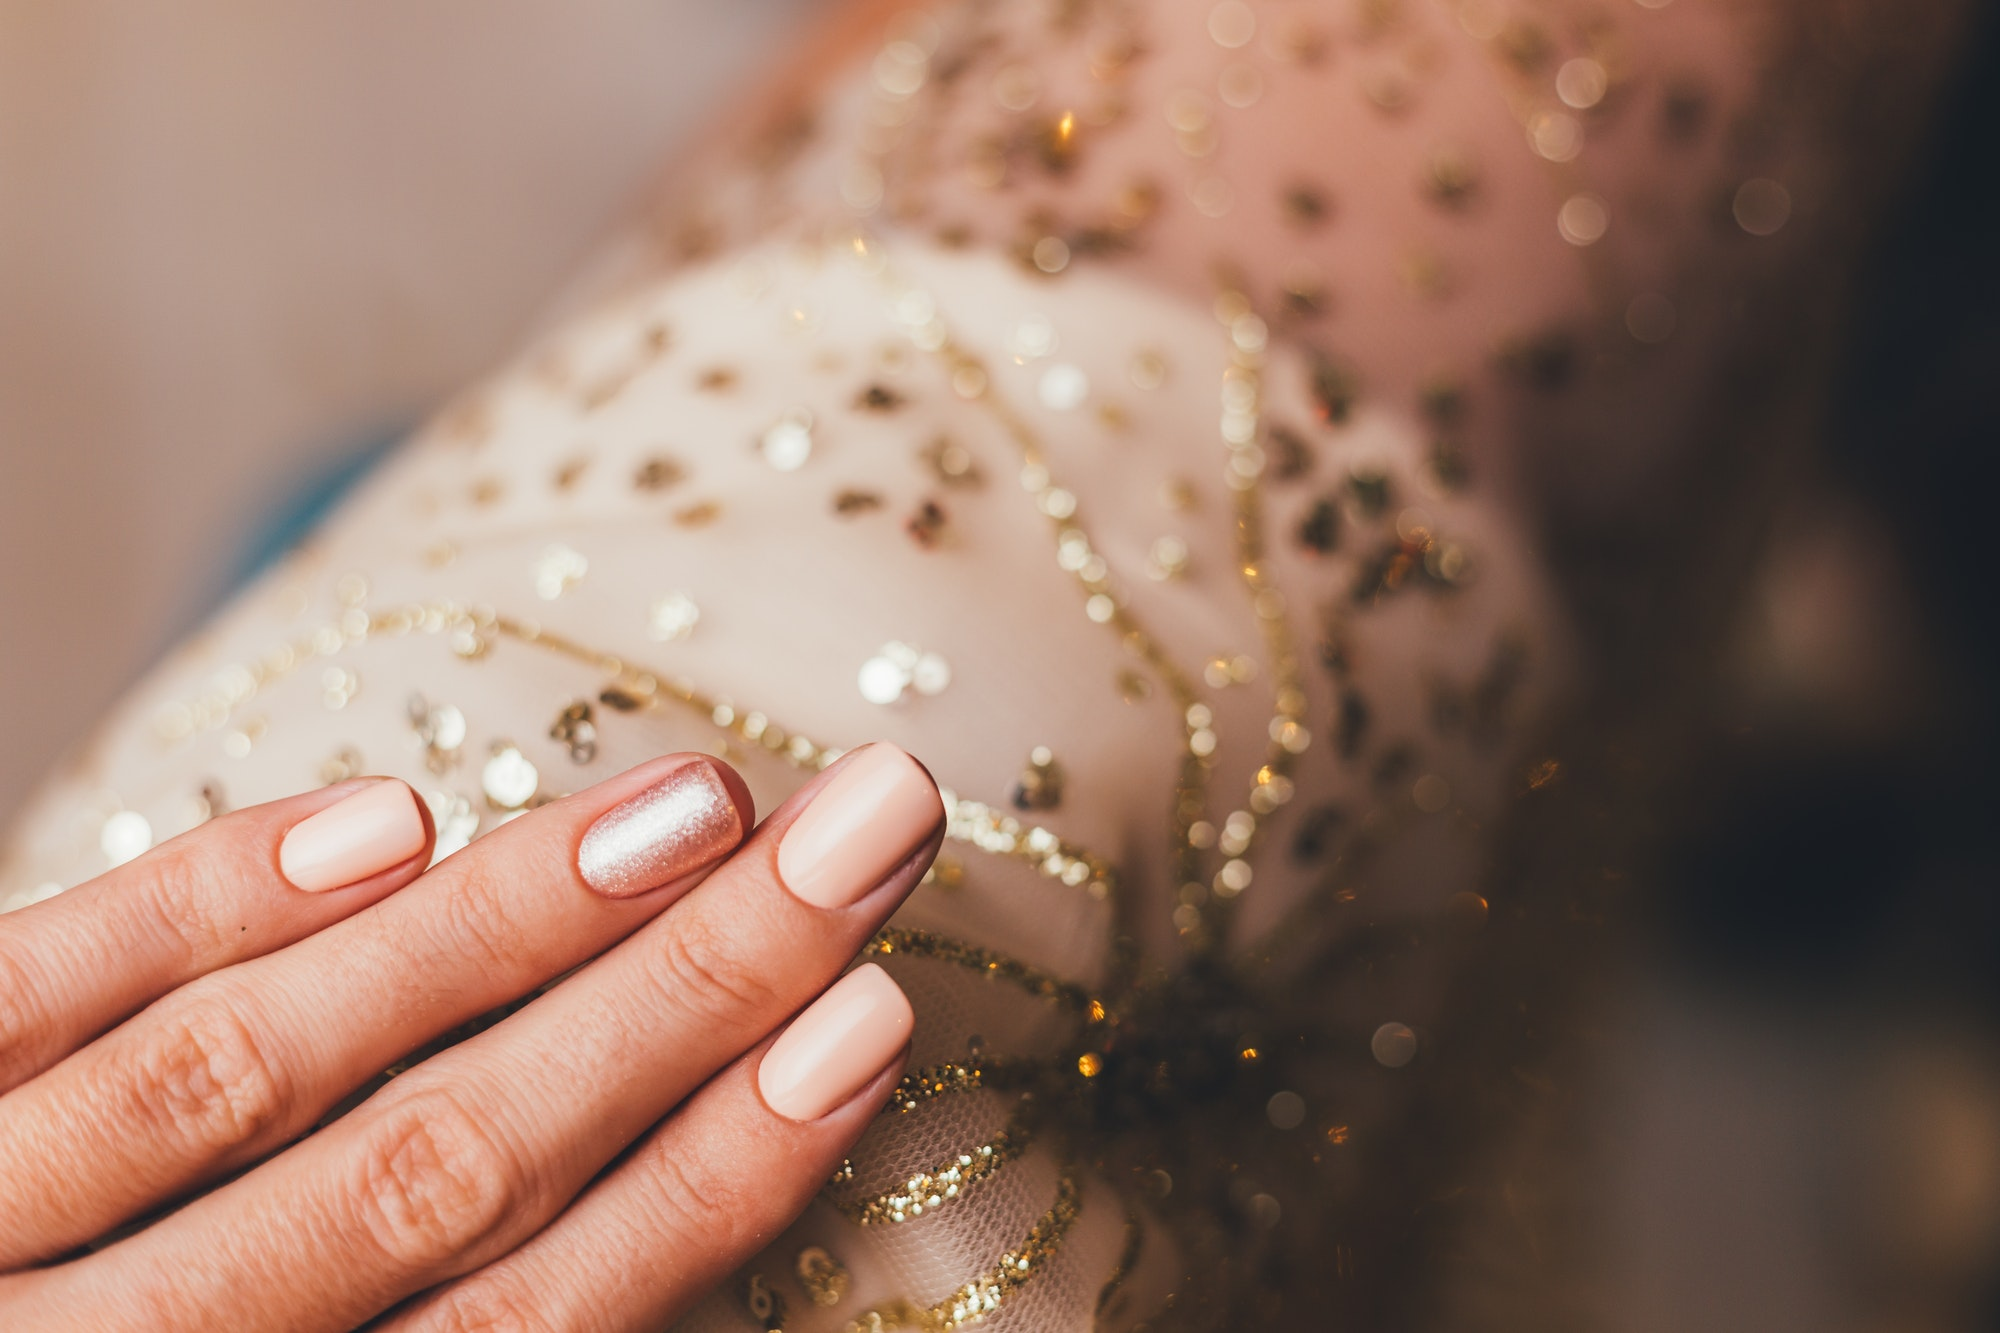 Female hands with Christmas new year nail design. Nude beige nail polish manicure